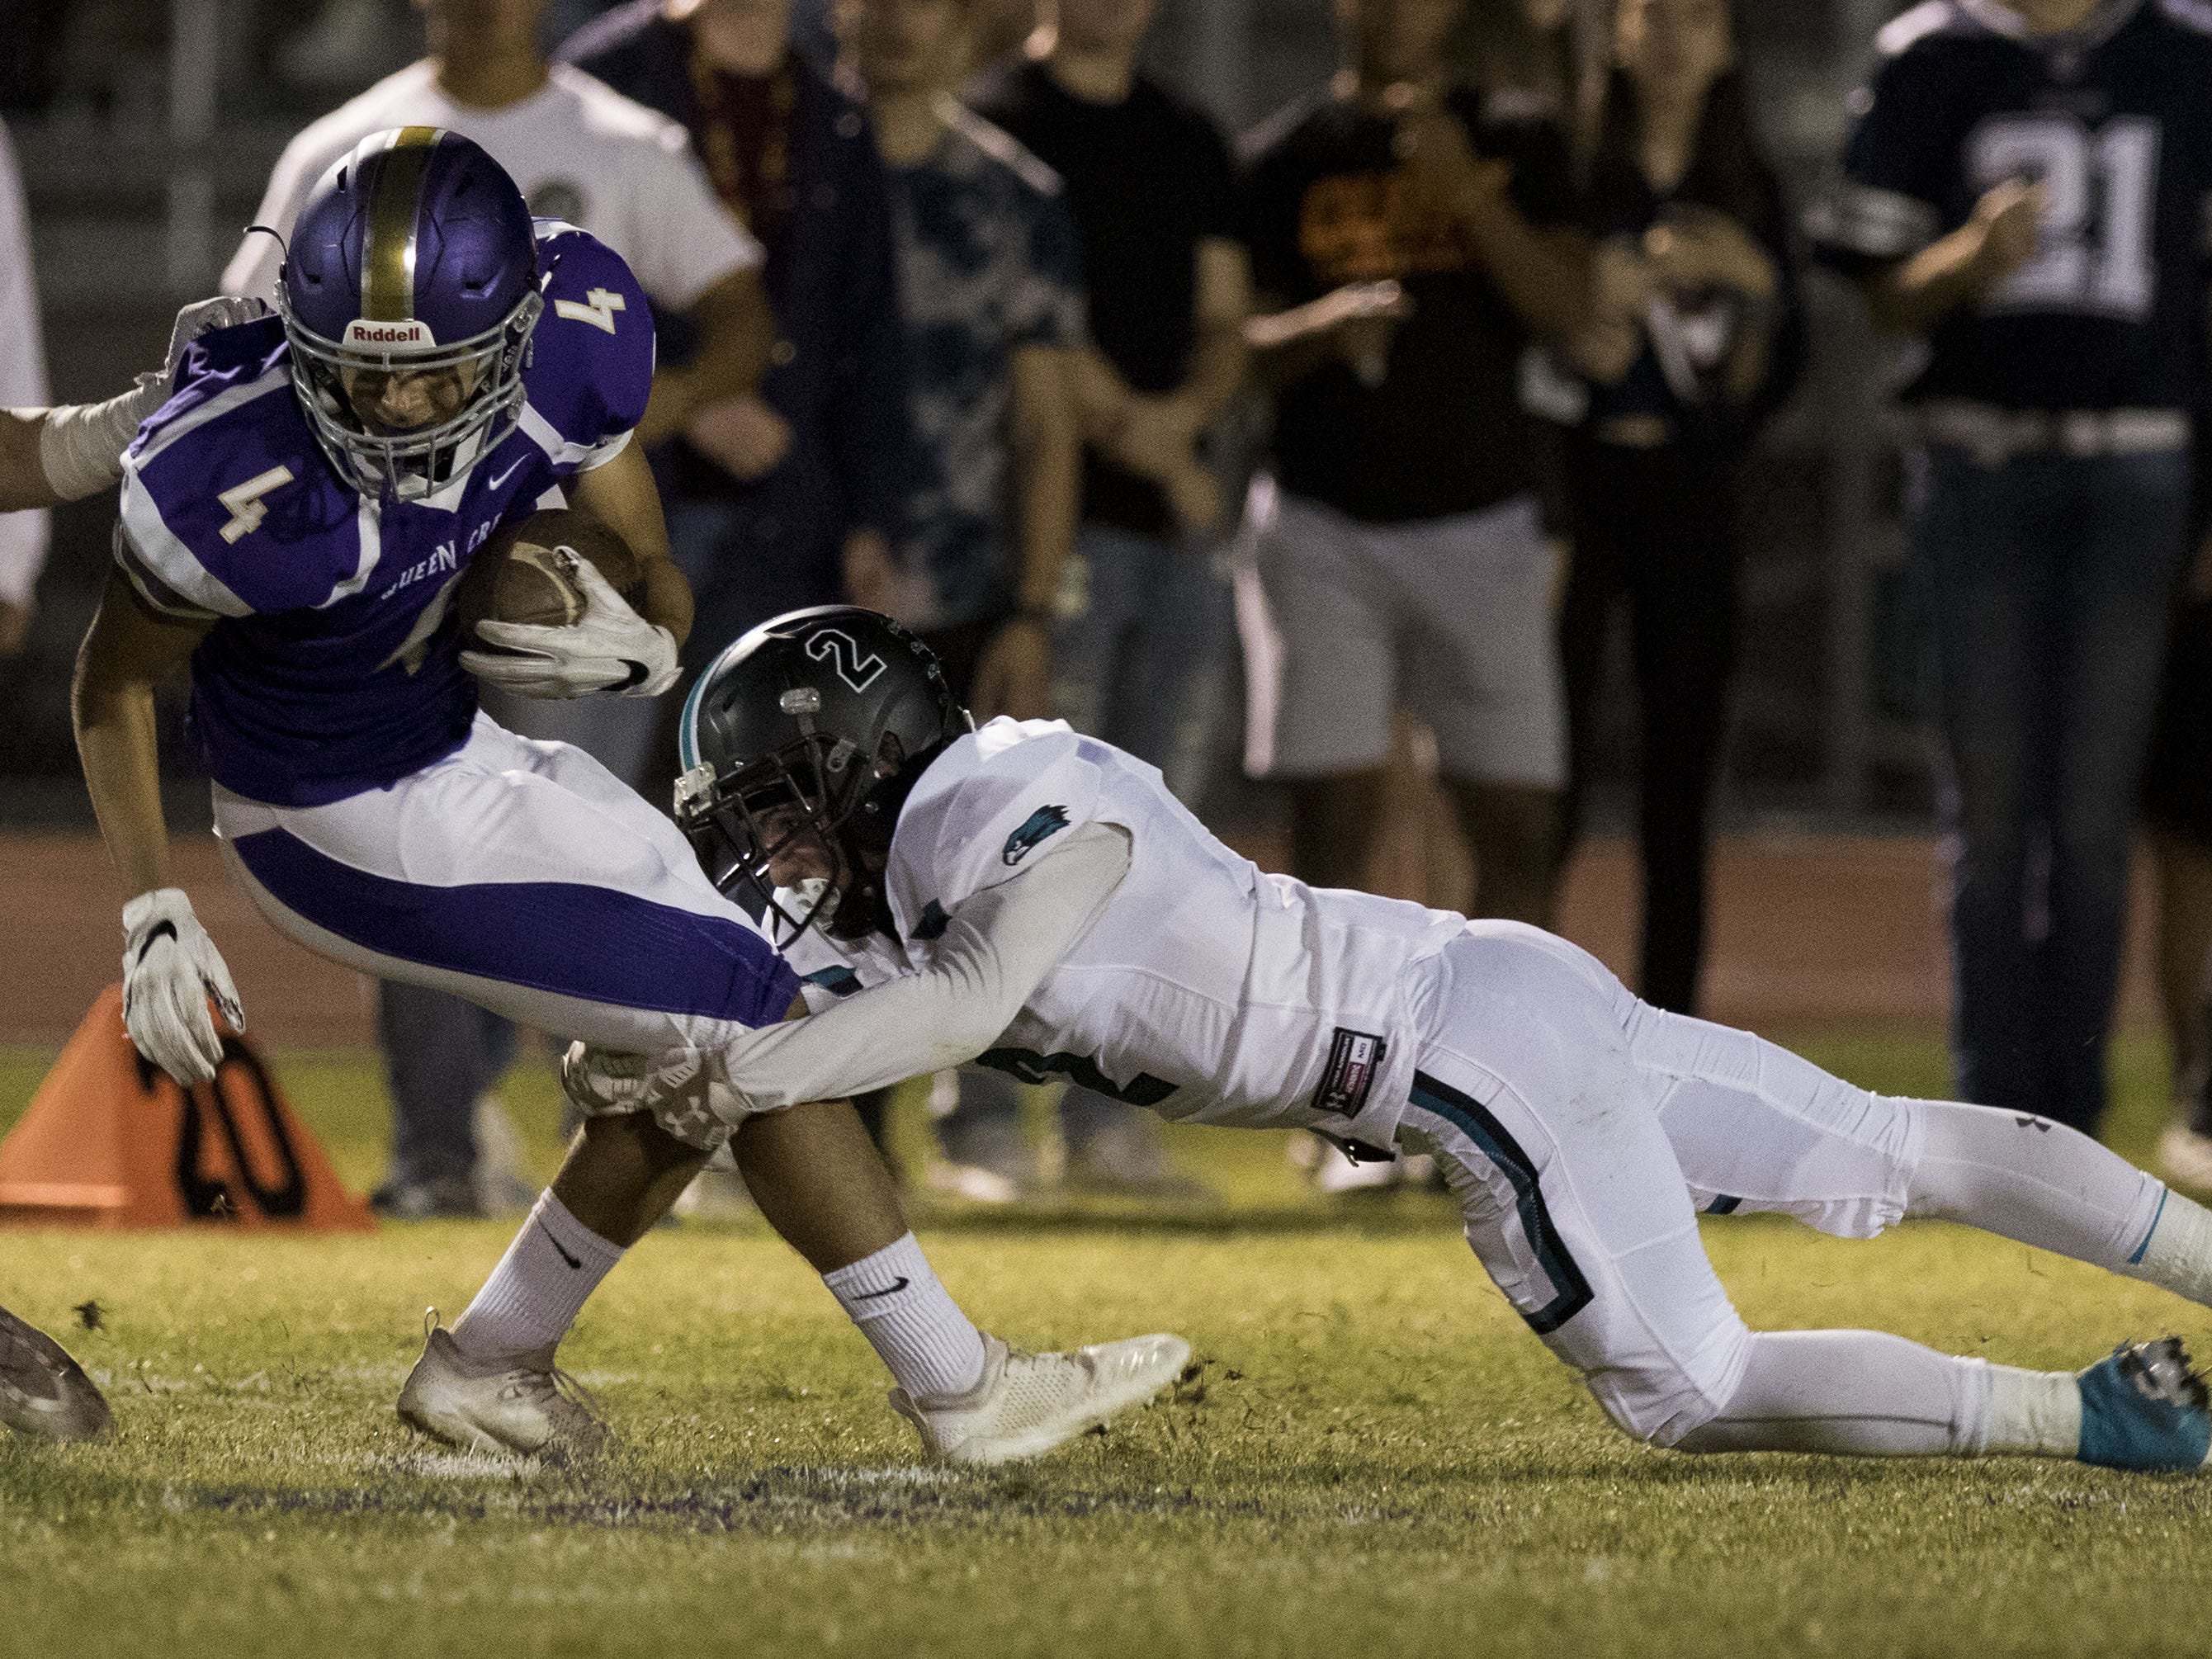 Queen Creek's Alec Prochazka gets tackled by Highland's Dayton Huffman in Queen Creek Friday, Oct. 19, 2018. #azhsfb